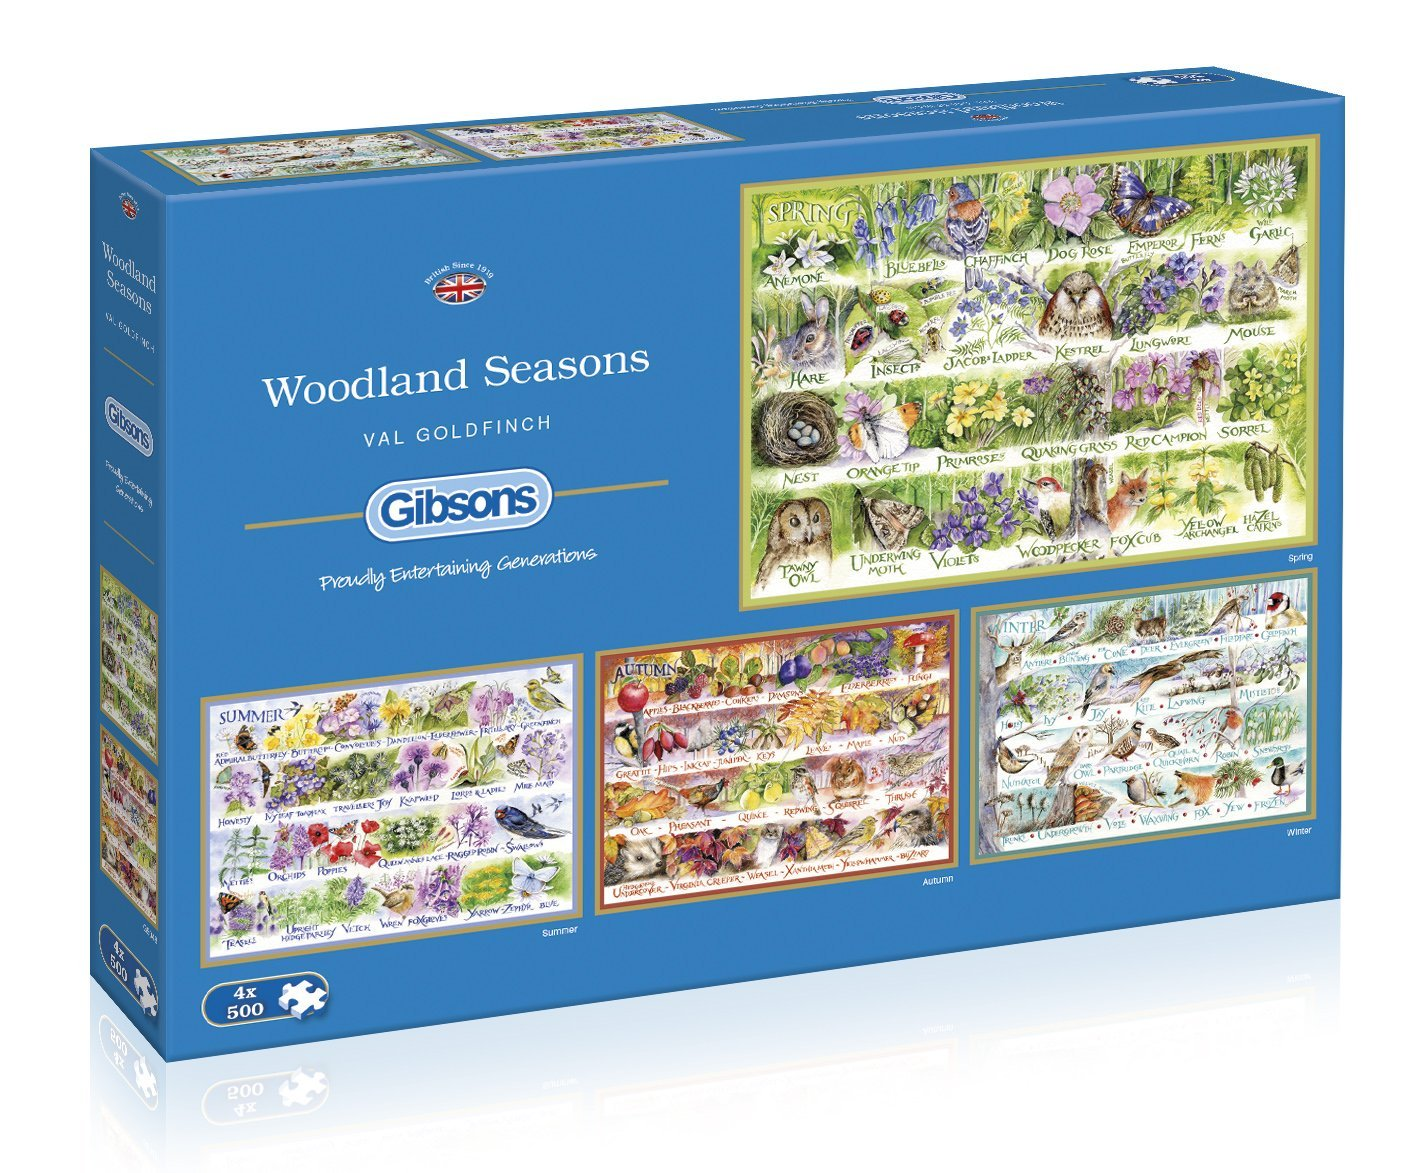 Woodland Seasons, 4 x 500pc Puzzles